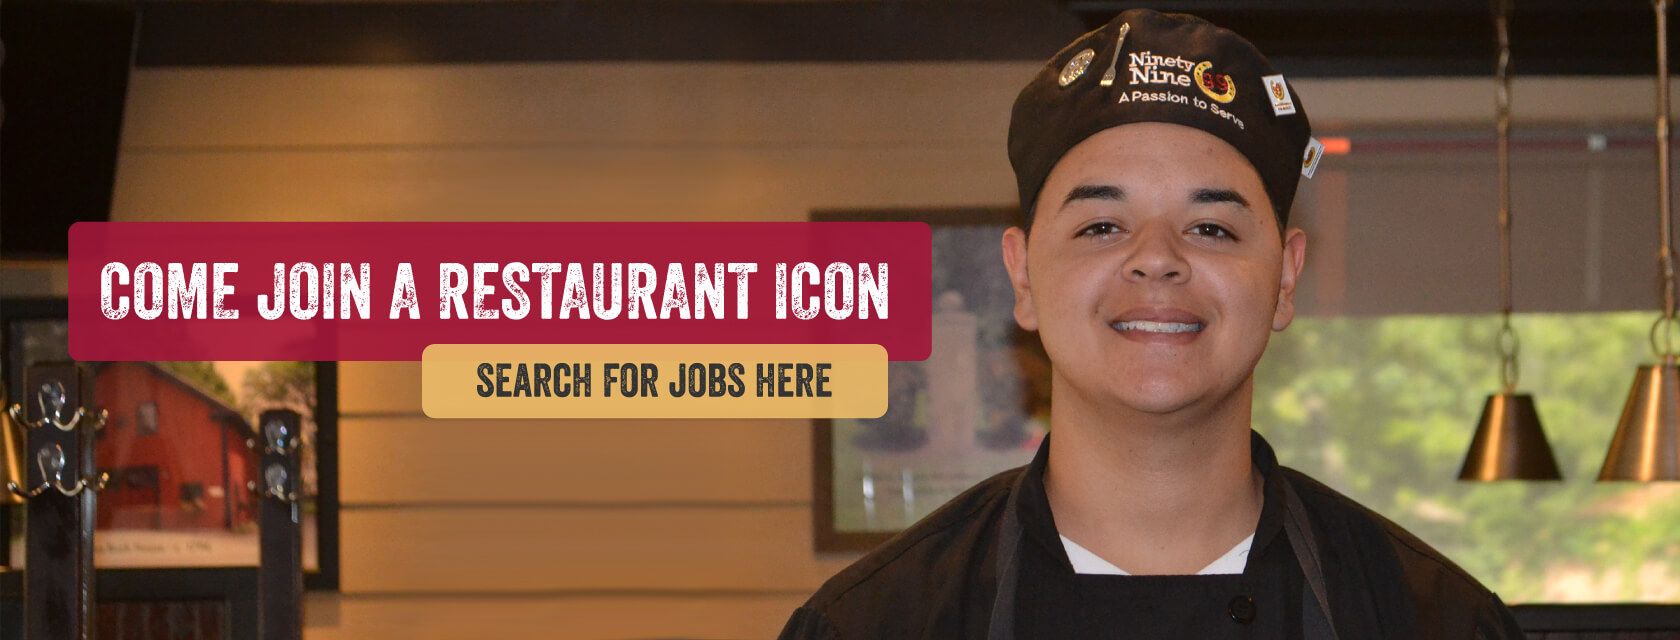 99 Restaurant Pub Jobs